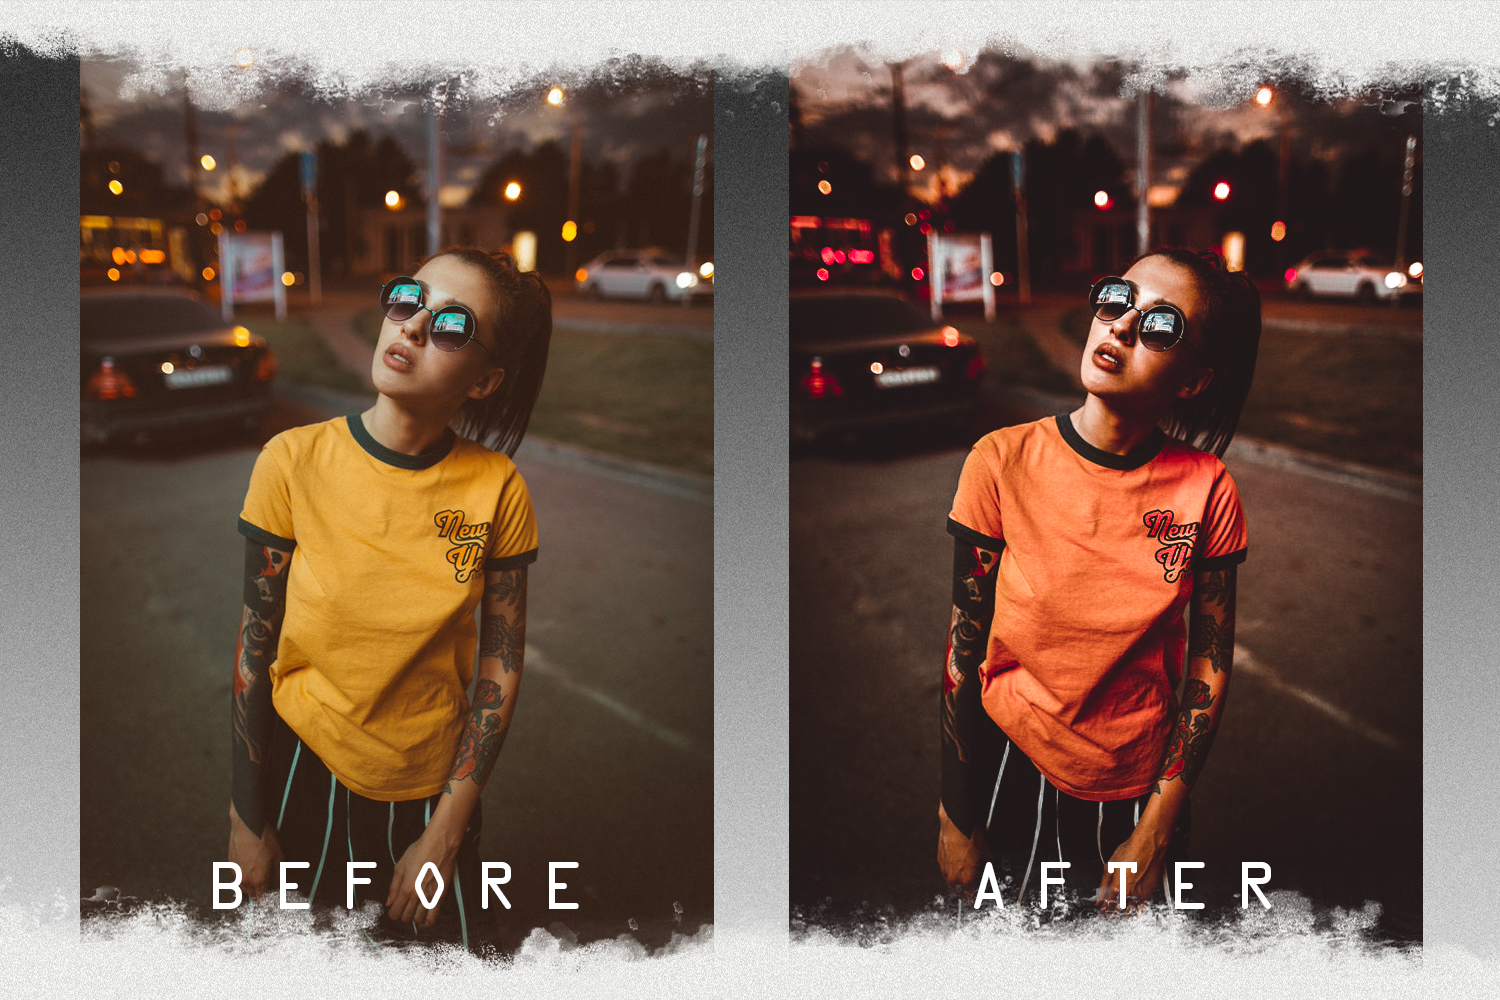 Nude presets for mobile and PC photo filter, photo effect example image 6